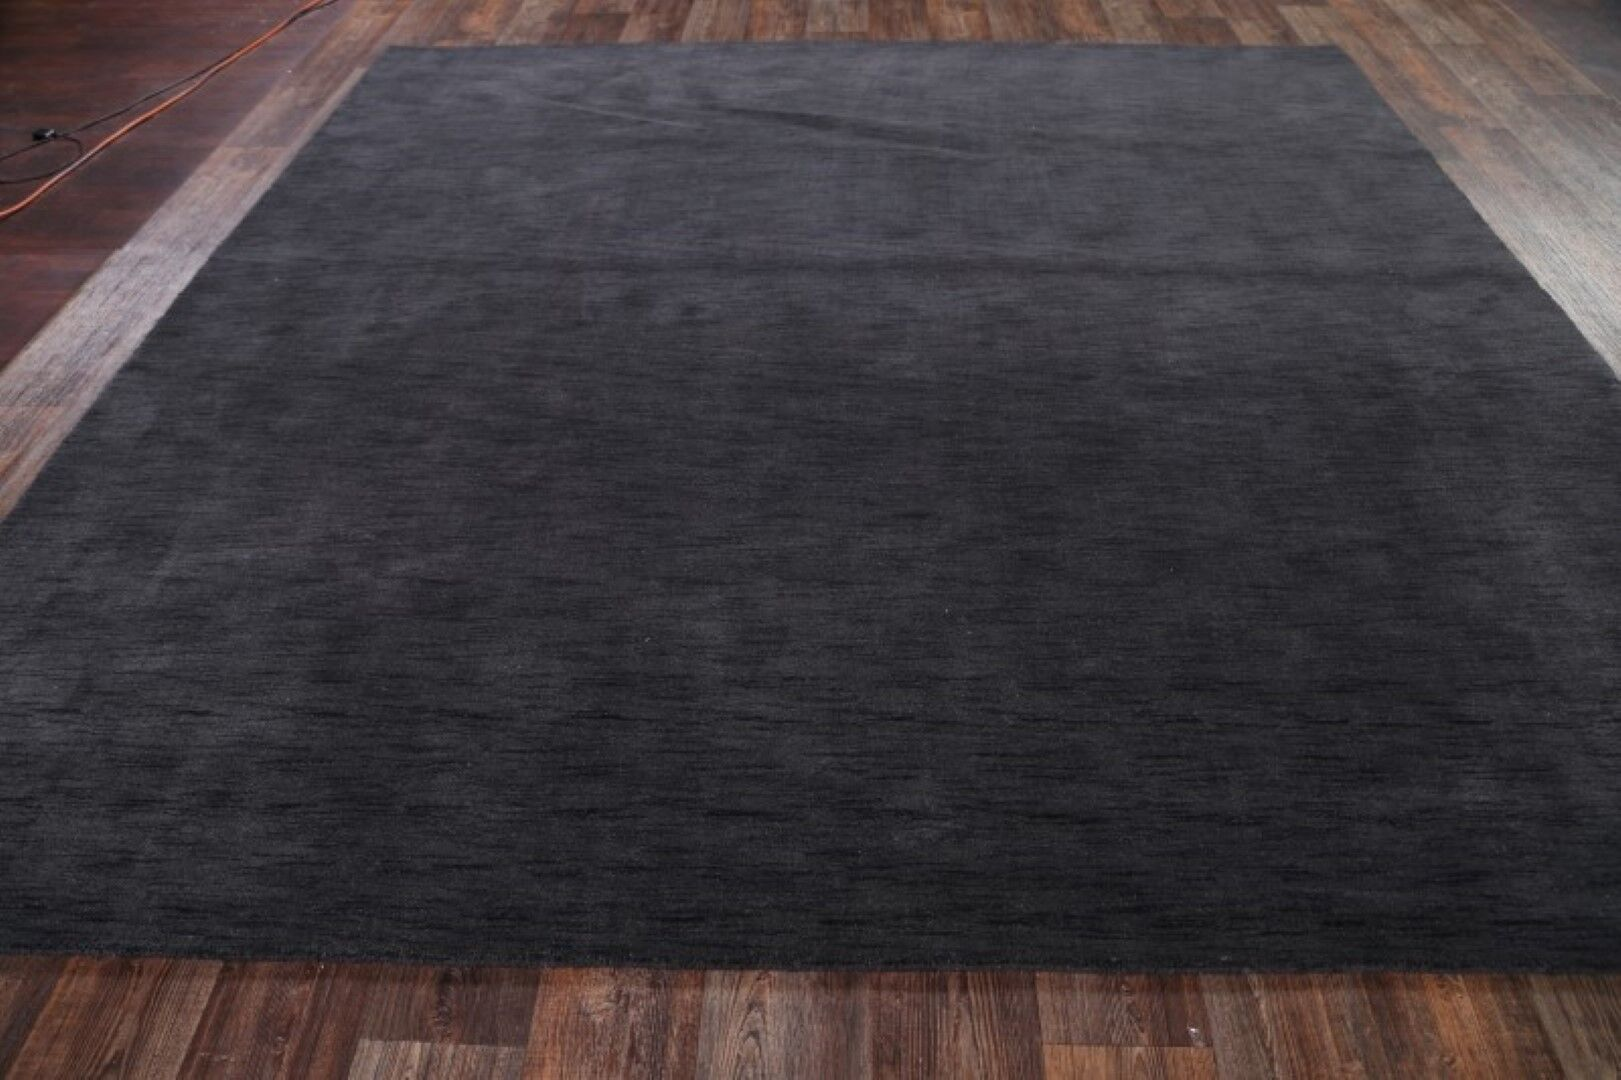 One-of-a-Kind Albus Gabbeh Indian Oriental Hand-Knotted Wool Gray/Charcoal Area Rug Rug Size: Rectangle 8'1